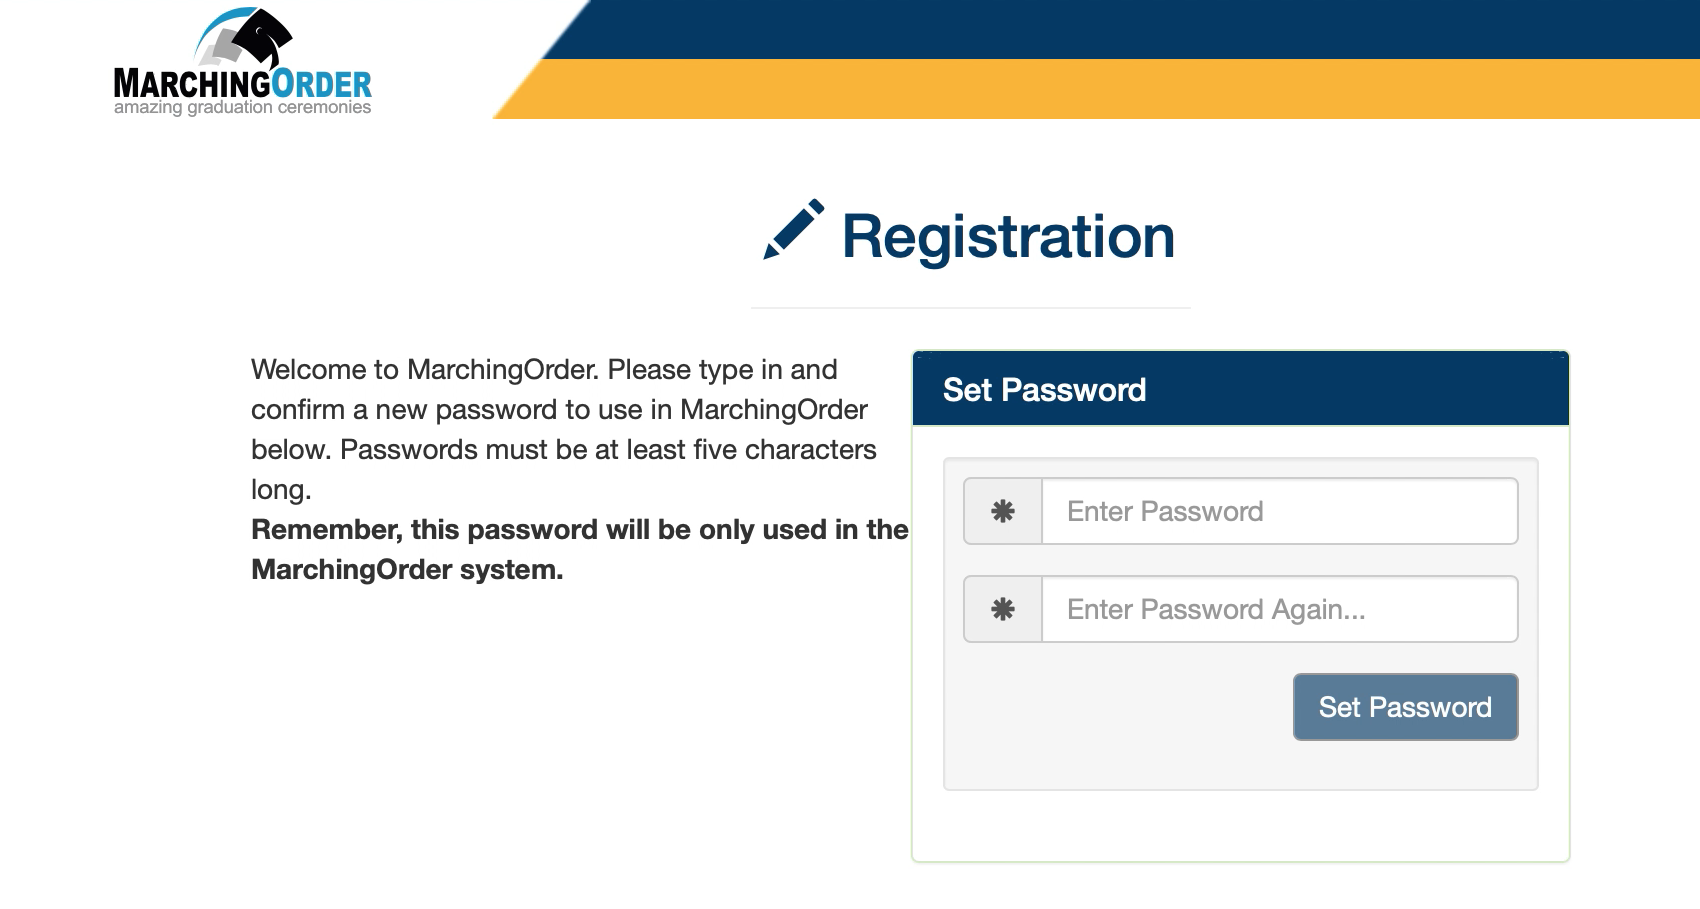 Marching Orders - Registration